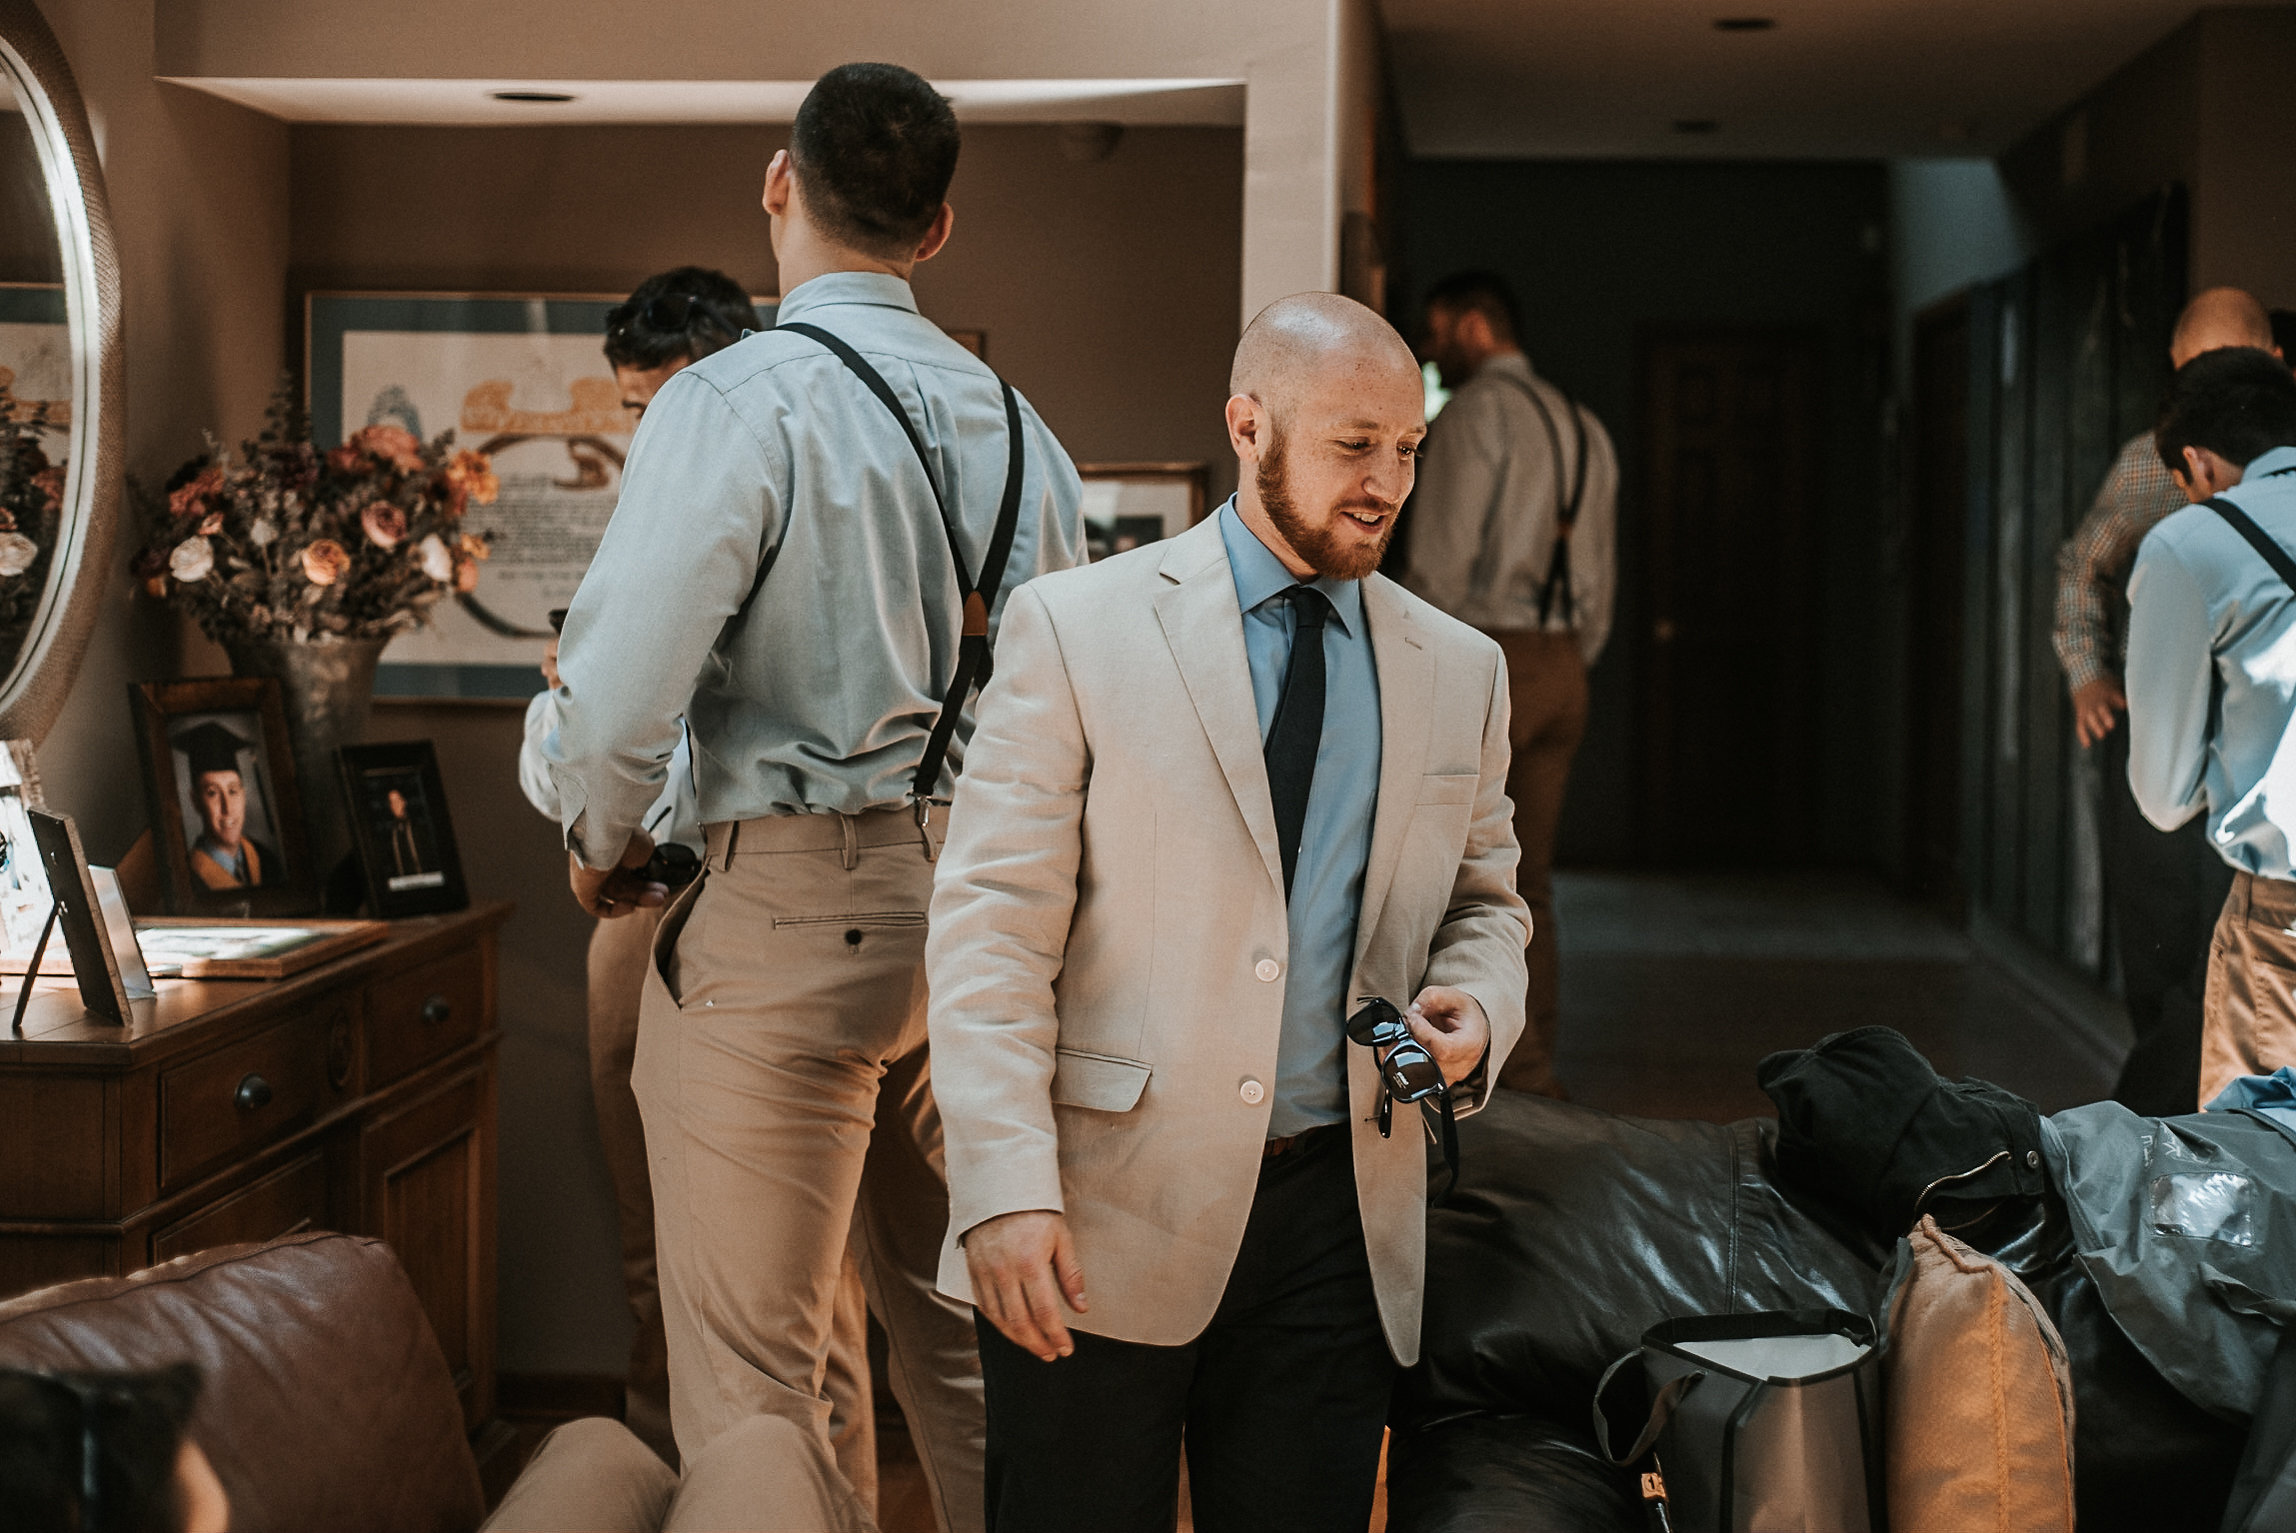 Groom getting ready for wedding in suite